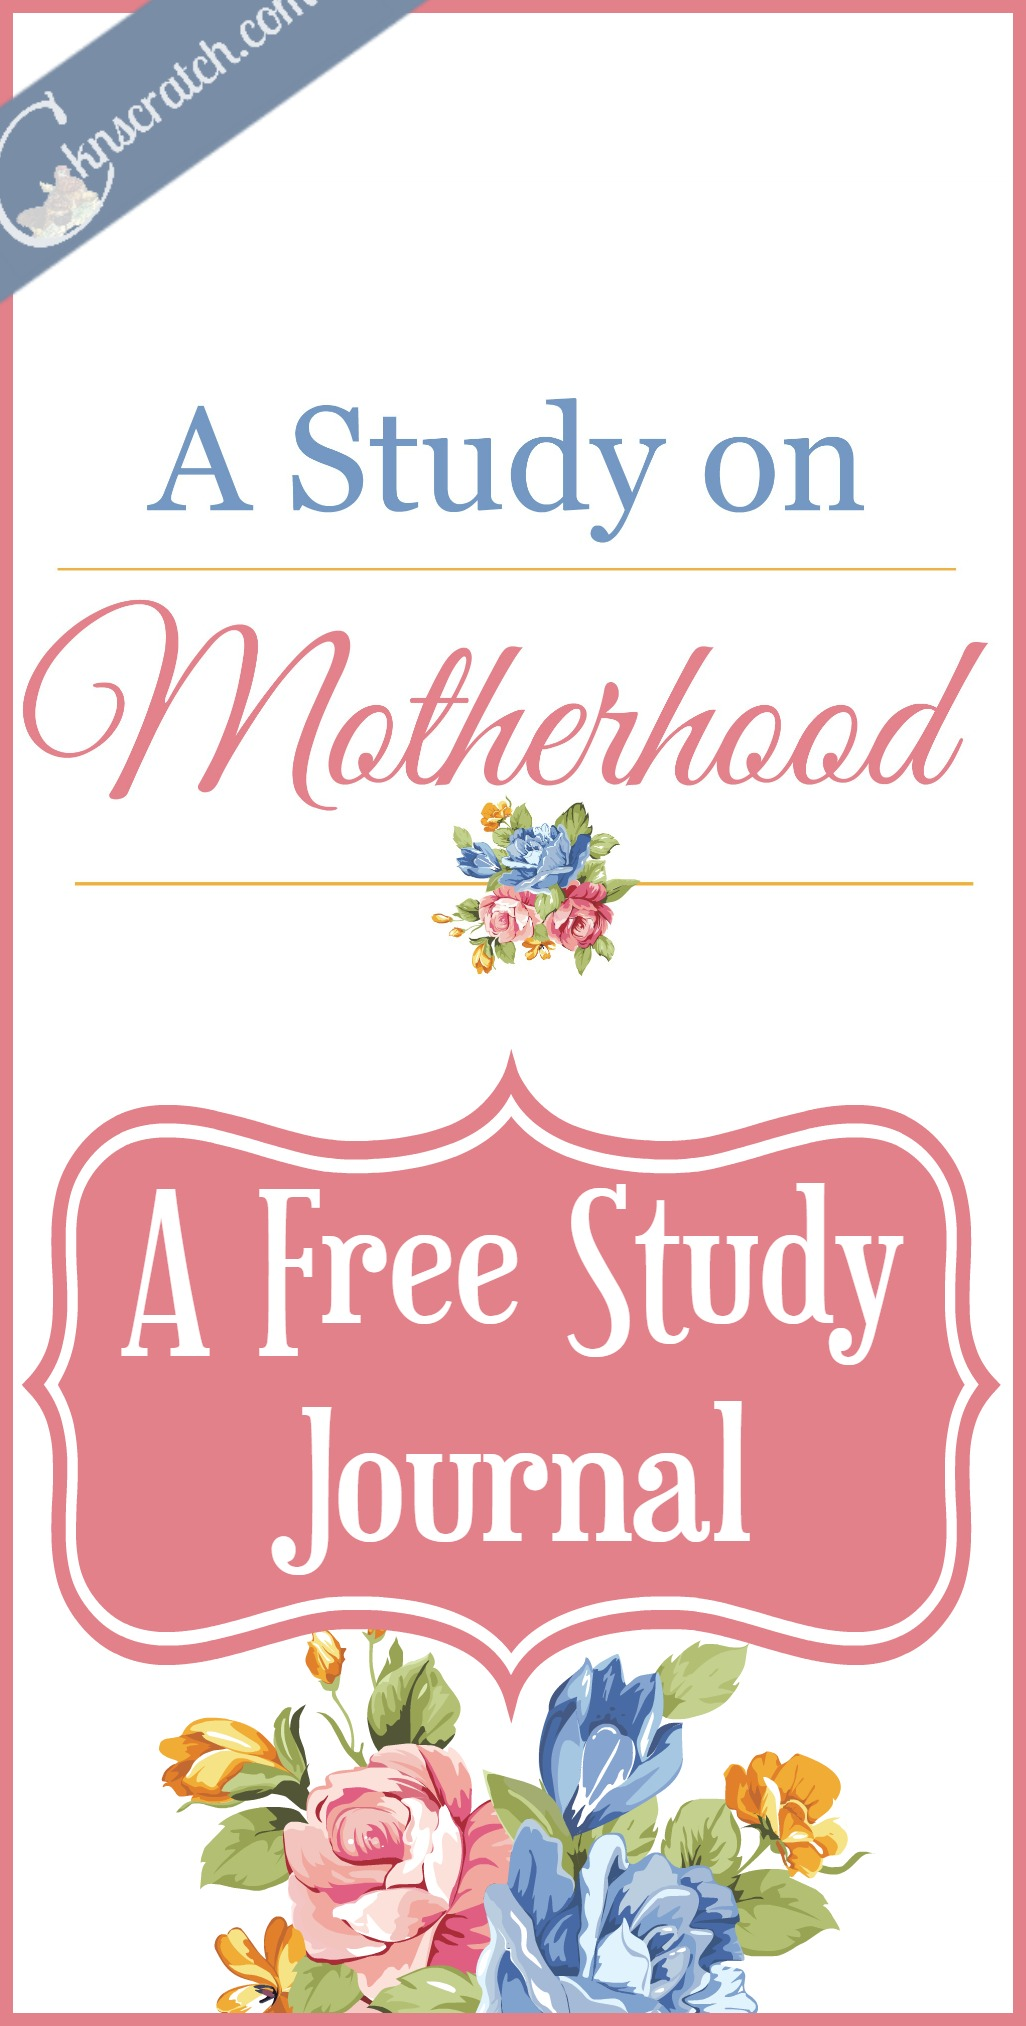 Love this inspired study of what Motherhood really is and our role as woman around the world.